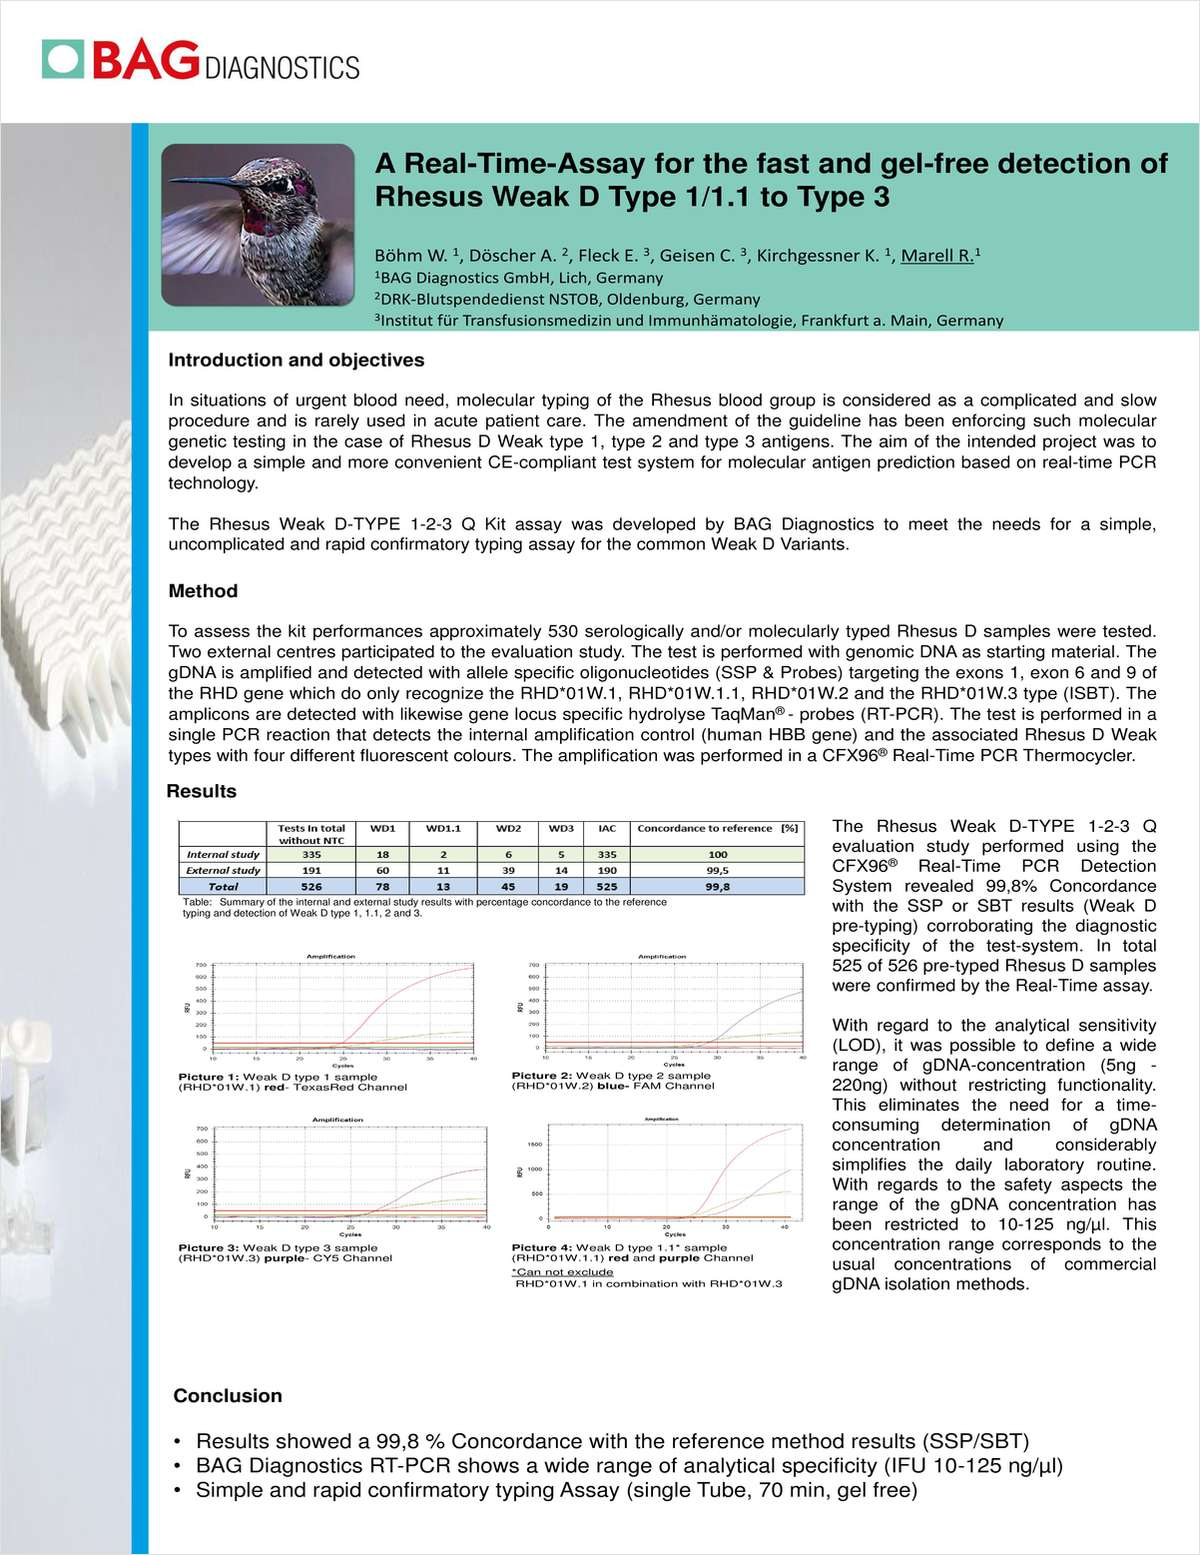 A Real-Time-Assay for the fast and gel-free detection of Rhesus Weak D Type 1/1.1 to Type 3